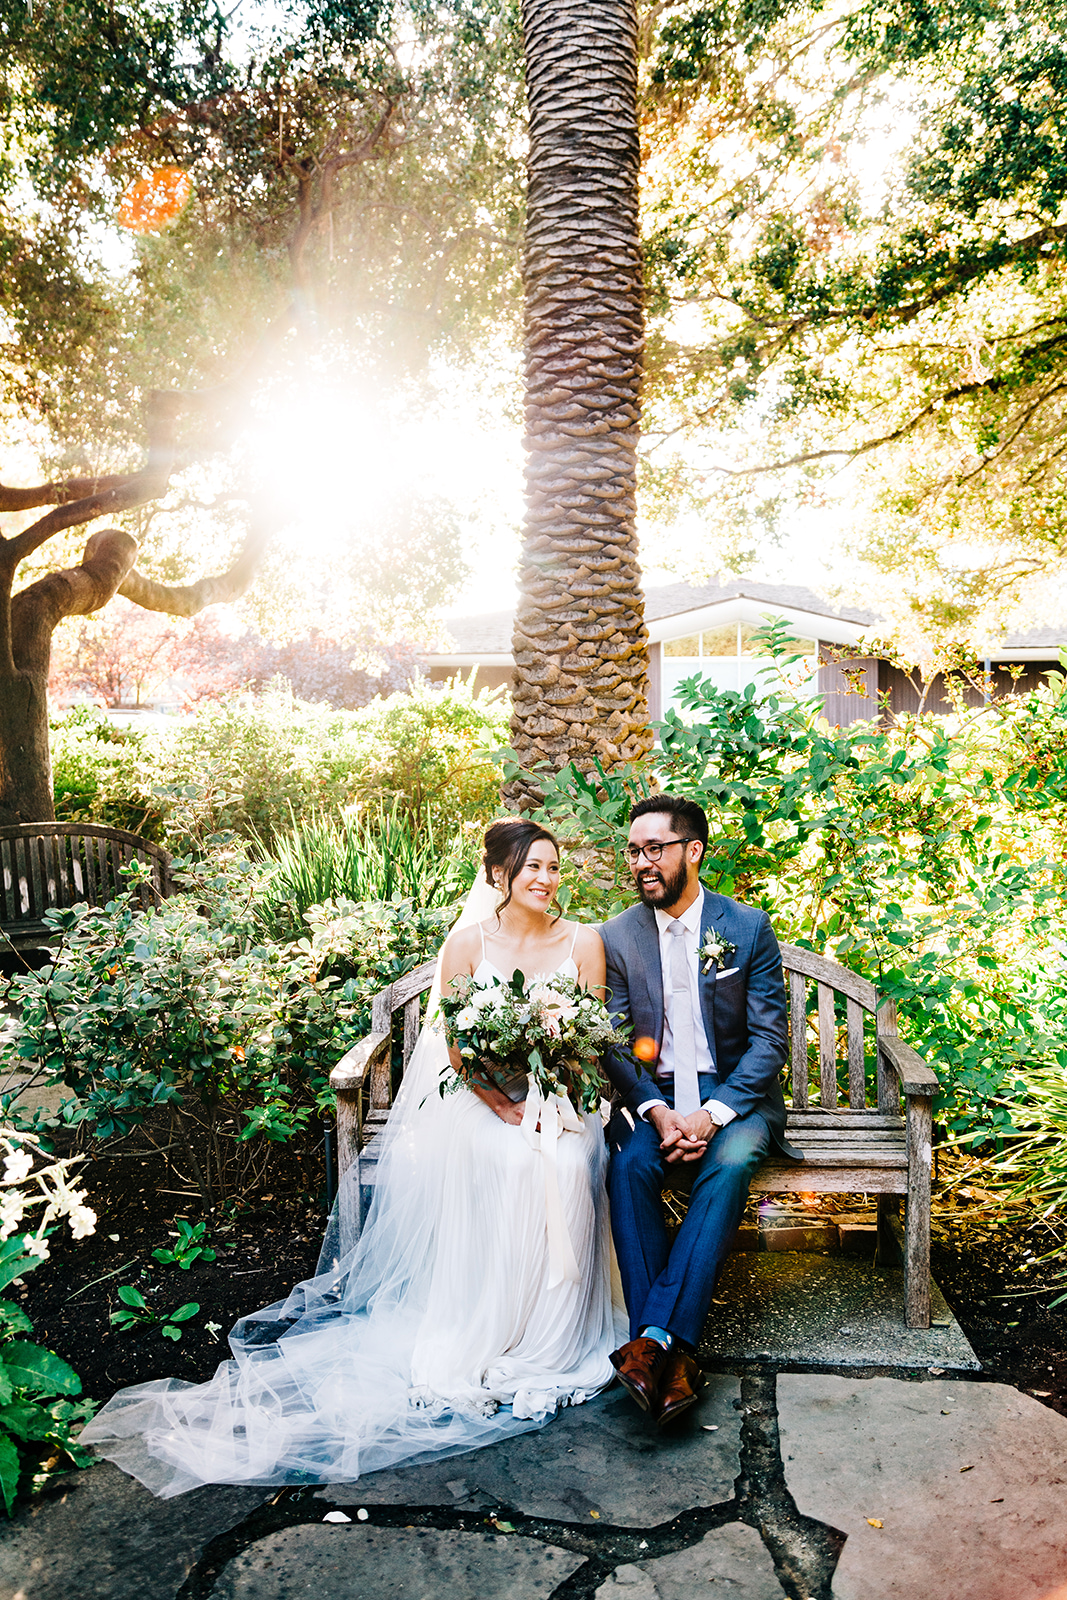 Los-Altos-History-Museum-Wedding_Orange-County-Wedding-Photographer_Clarisse-Rae-Photo-Video_70